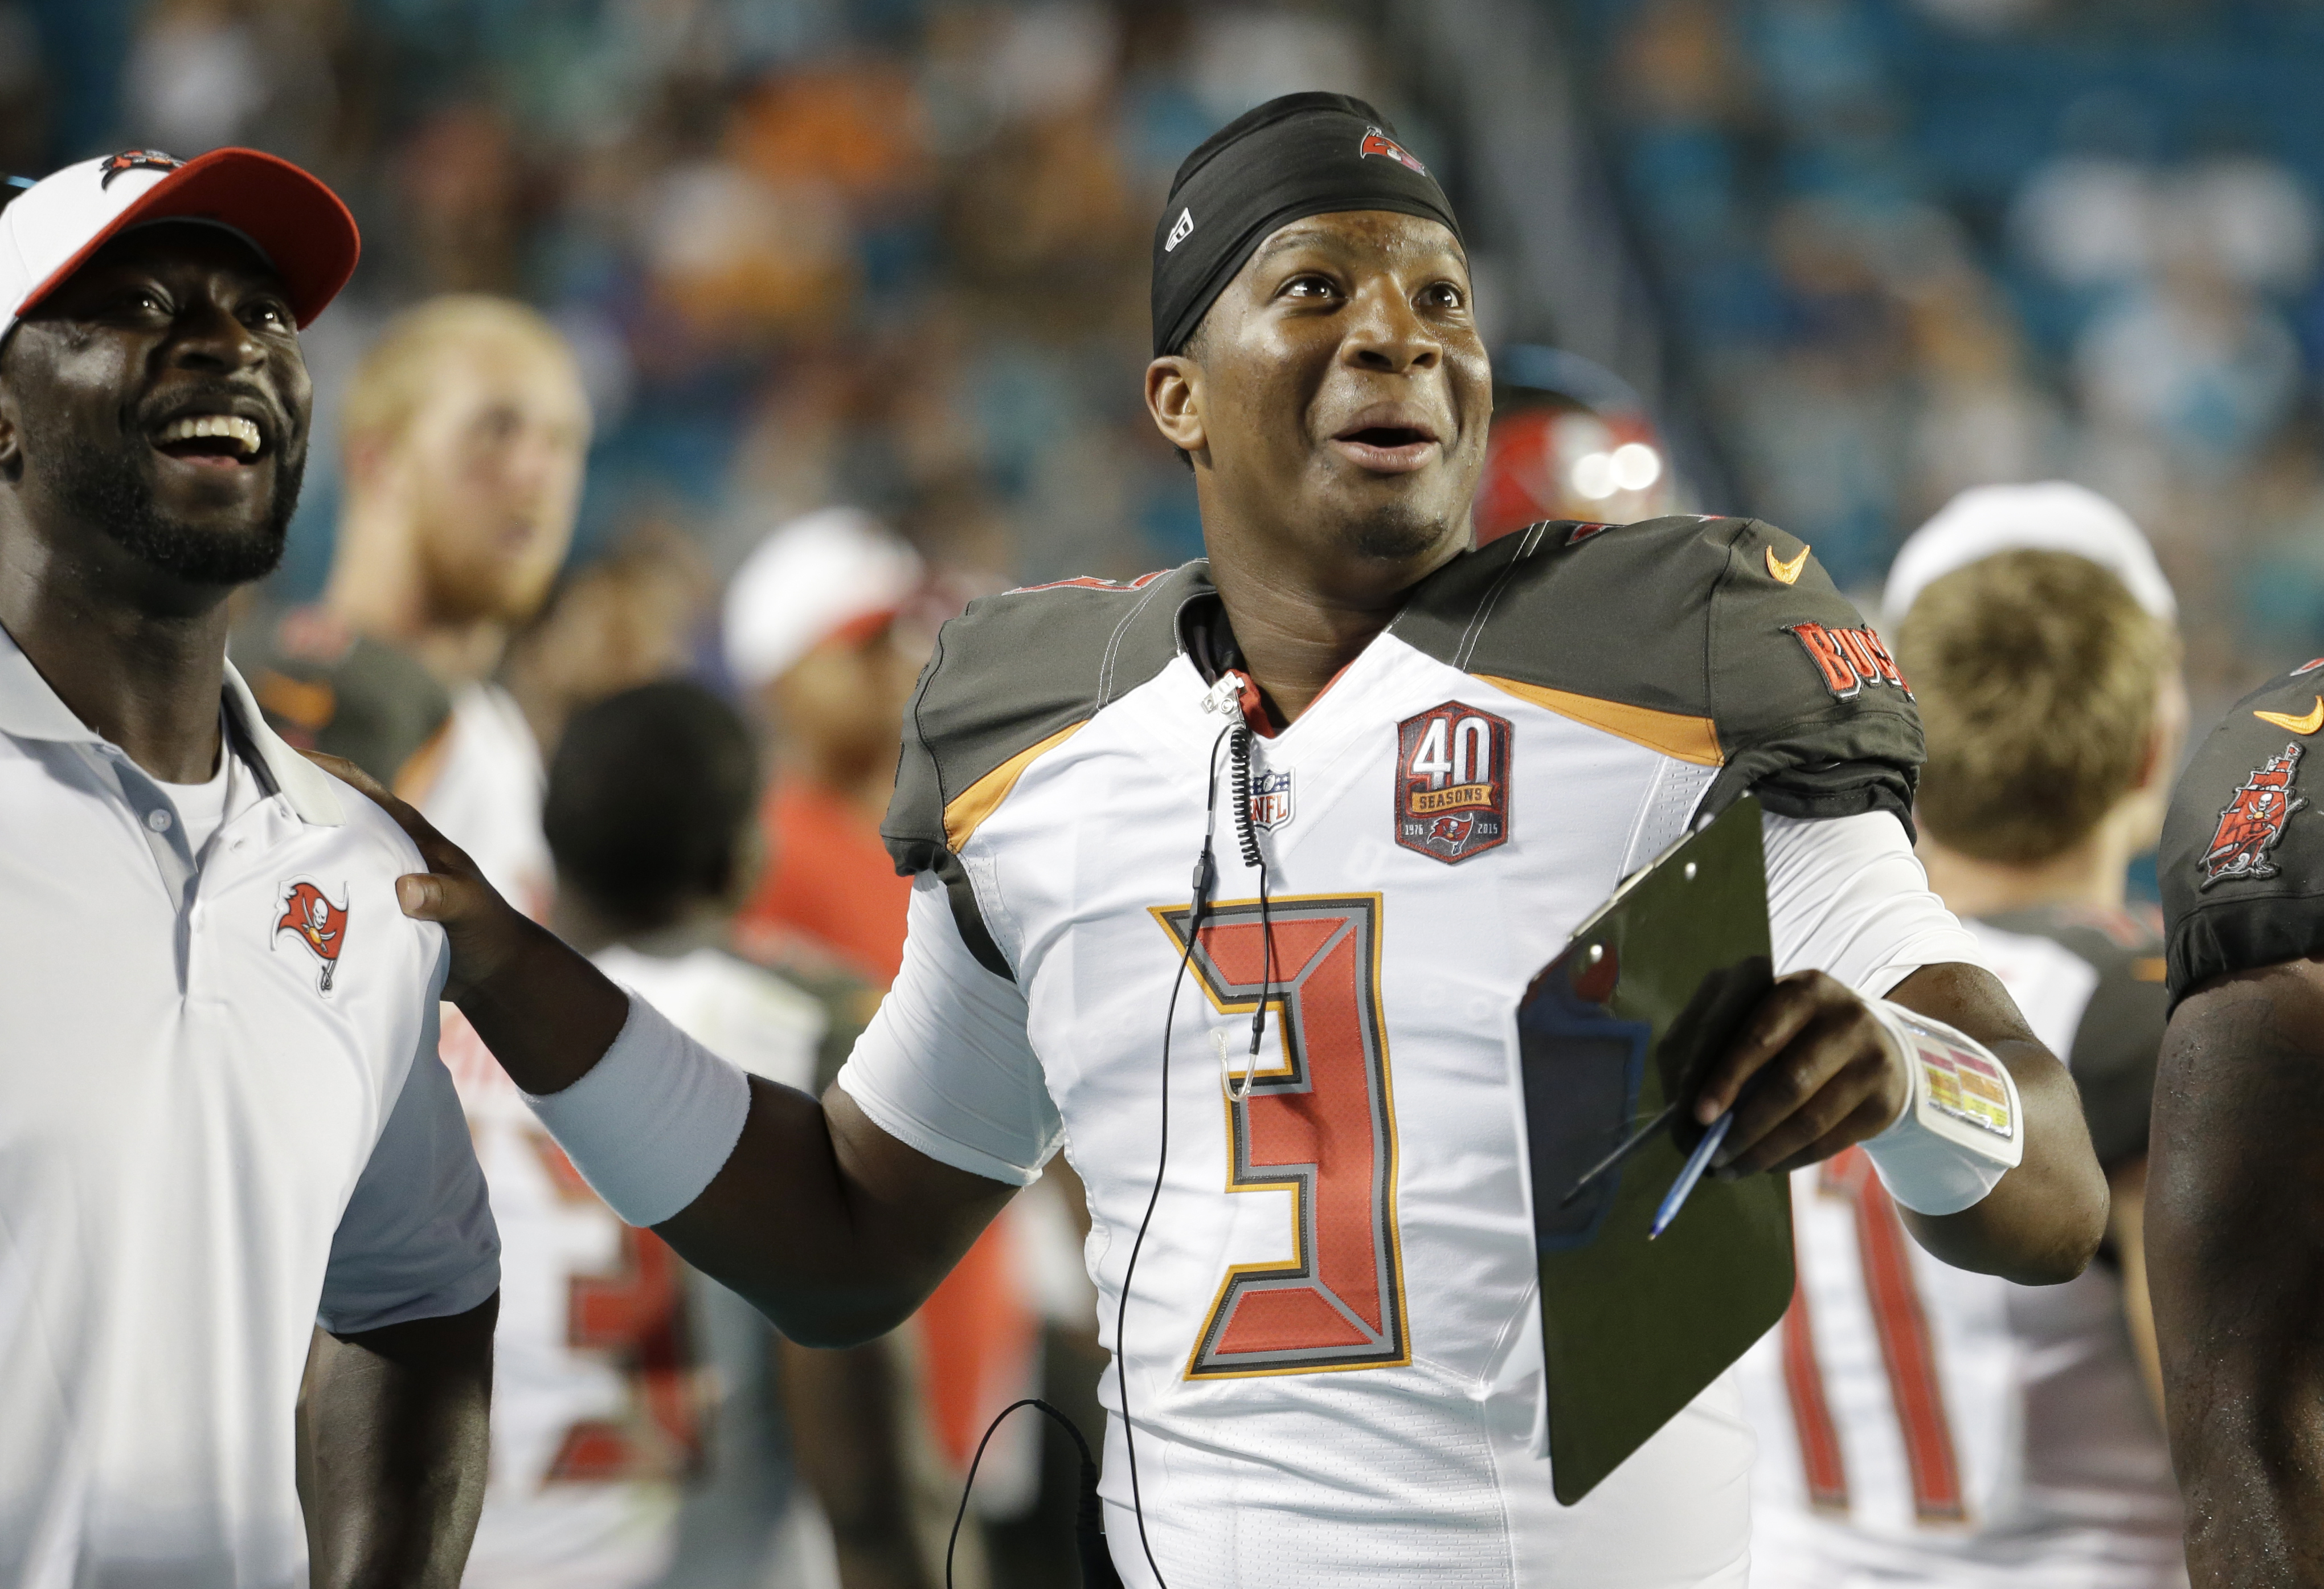 Tampa Bay Buccaneers quarterback Jameis Winston (3) watches a game replay during the second half of an NFL preseason football game against the Miami Dolphins, Thursday, Sept. 3, 2015, in Miami Gardens, Fla. (AP Photo/Lynne Sladky)